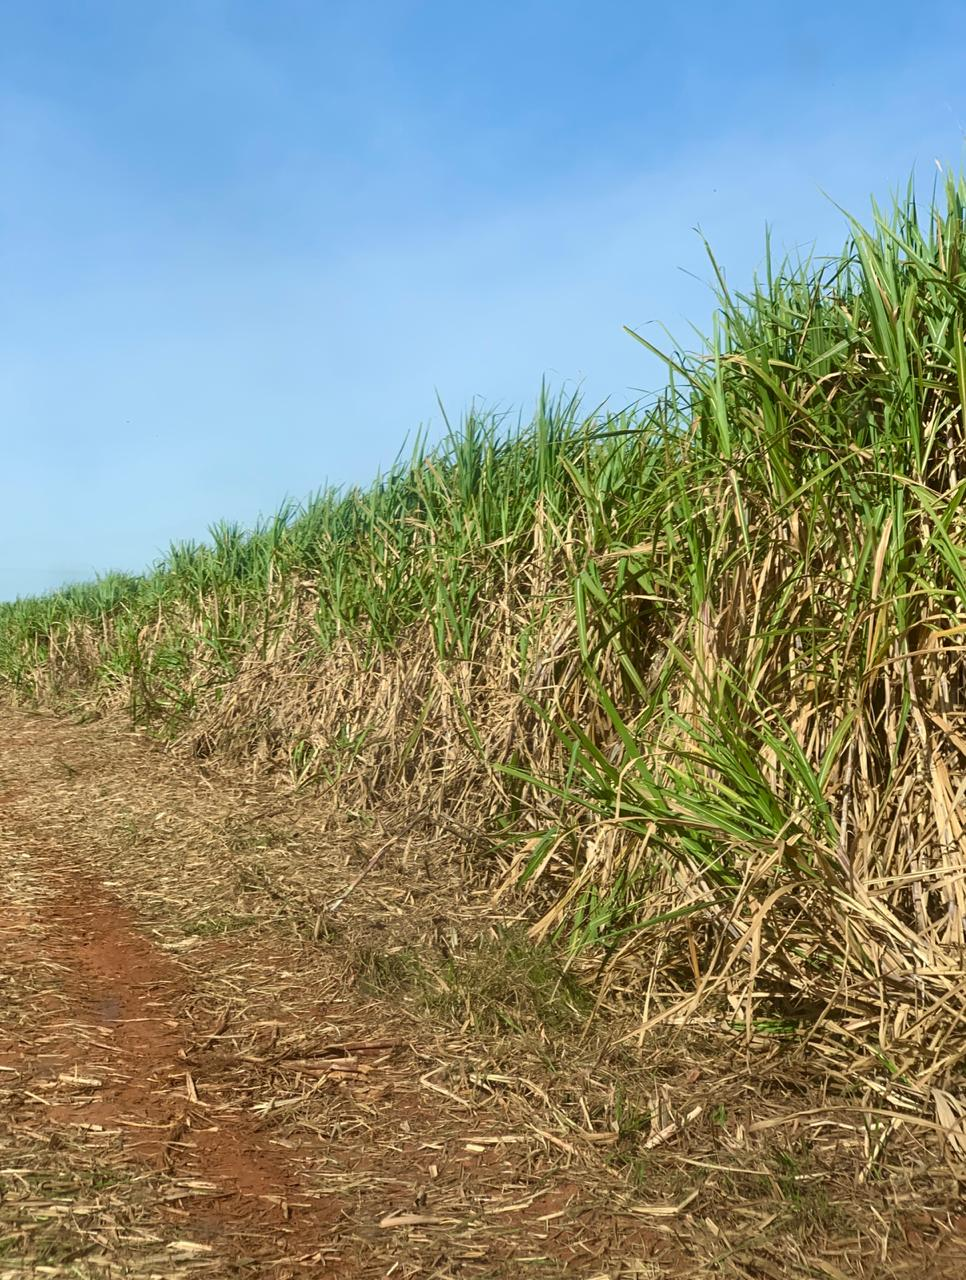 Sugarcane at Socicana farming association, Brazil